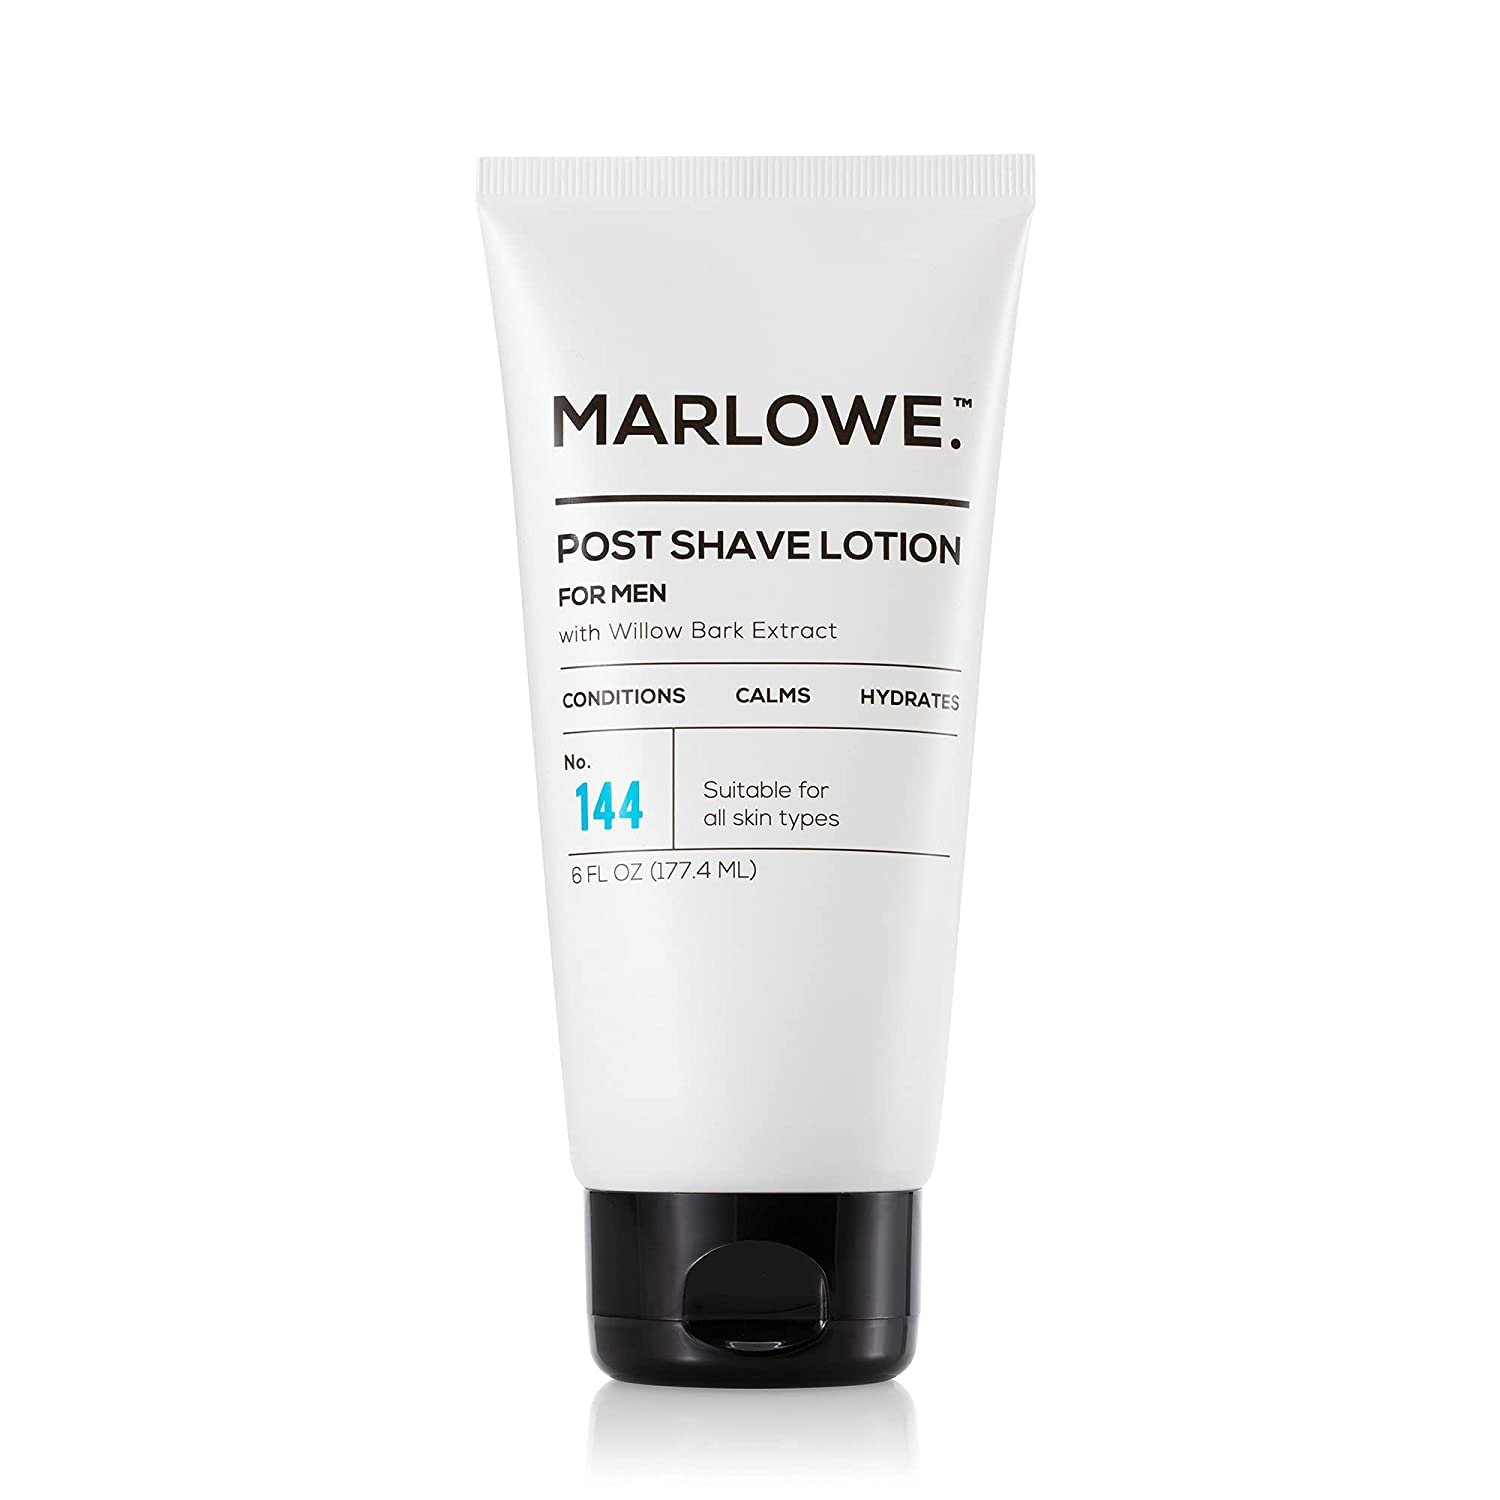 MARLOWE. No. 144 Post Shave Lotion Men Our shop most popular Conditions H Nashville-Davidson Mall 6 Oz for